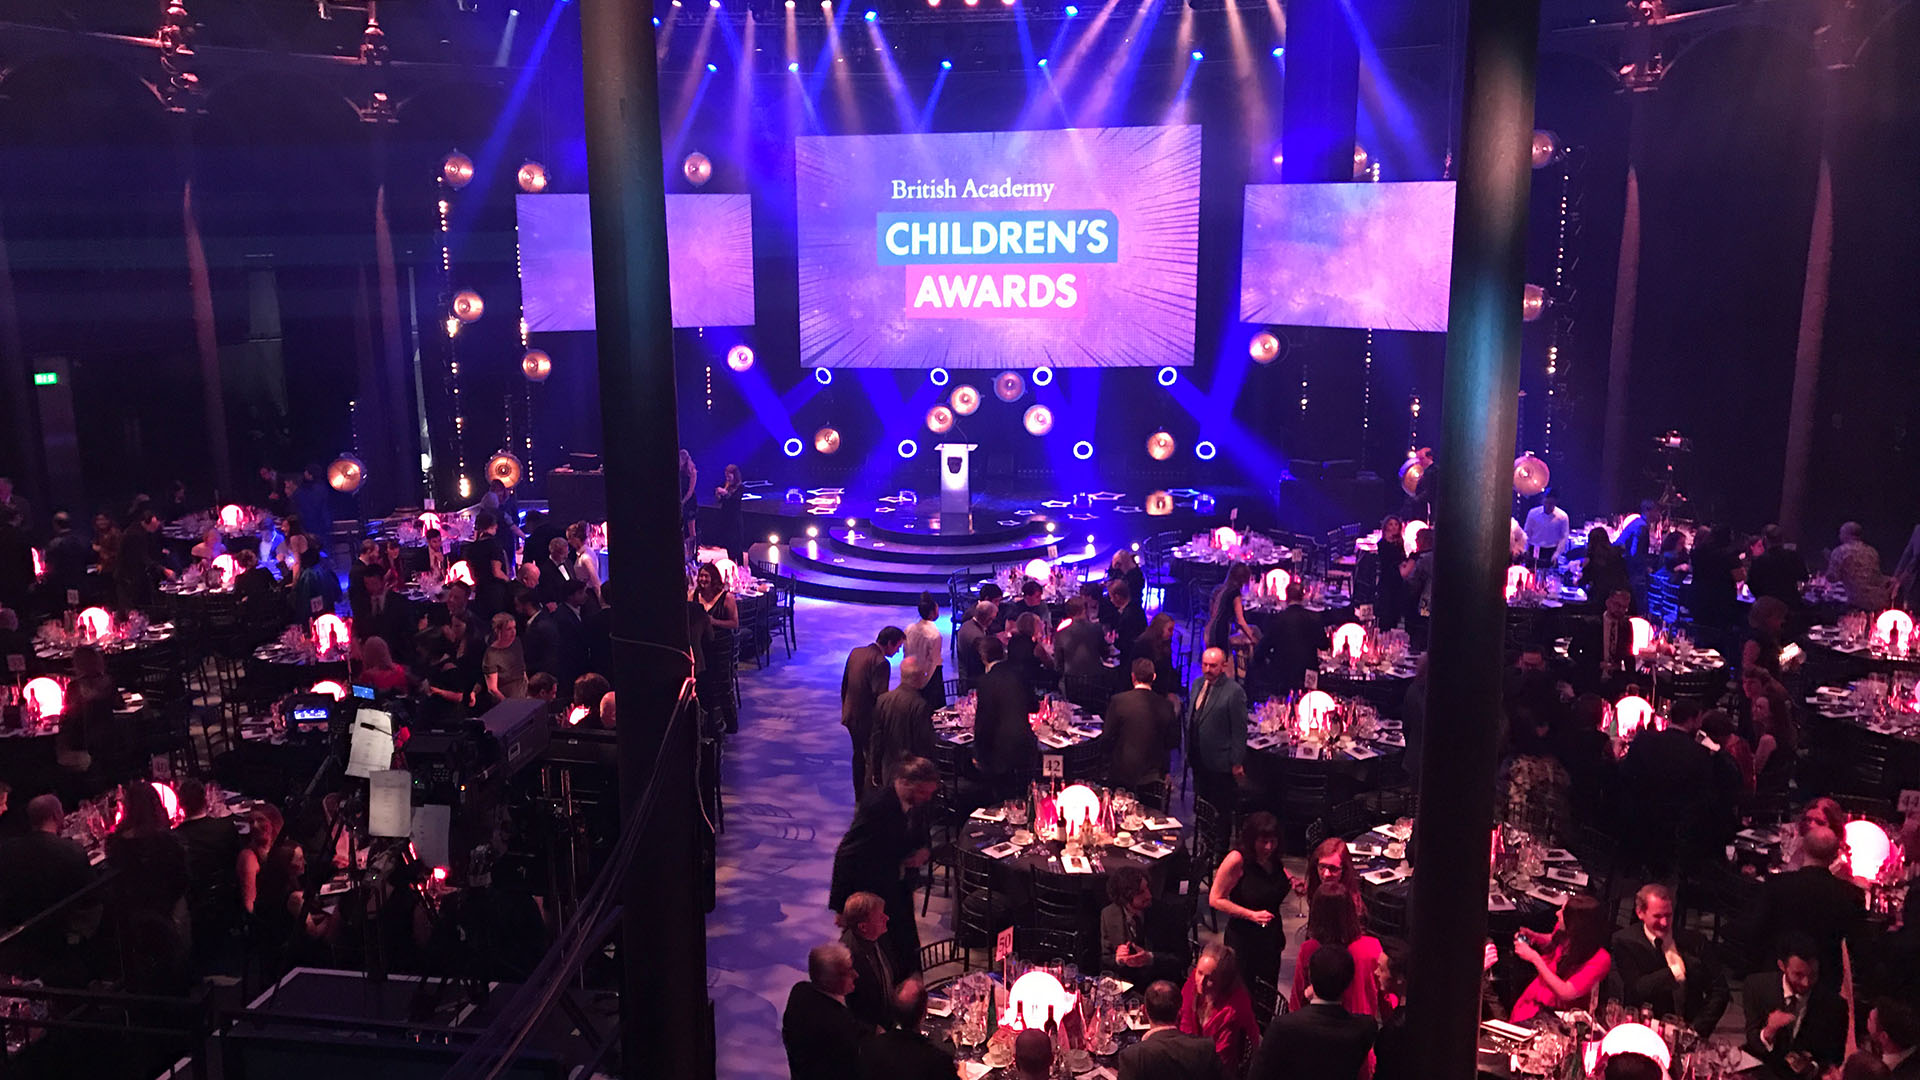 Main Hall at the Roundhouse for the Bafta Children's Awards 2016